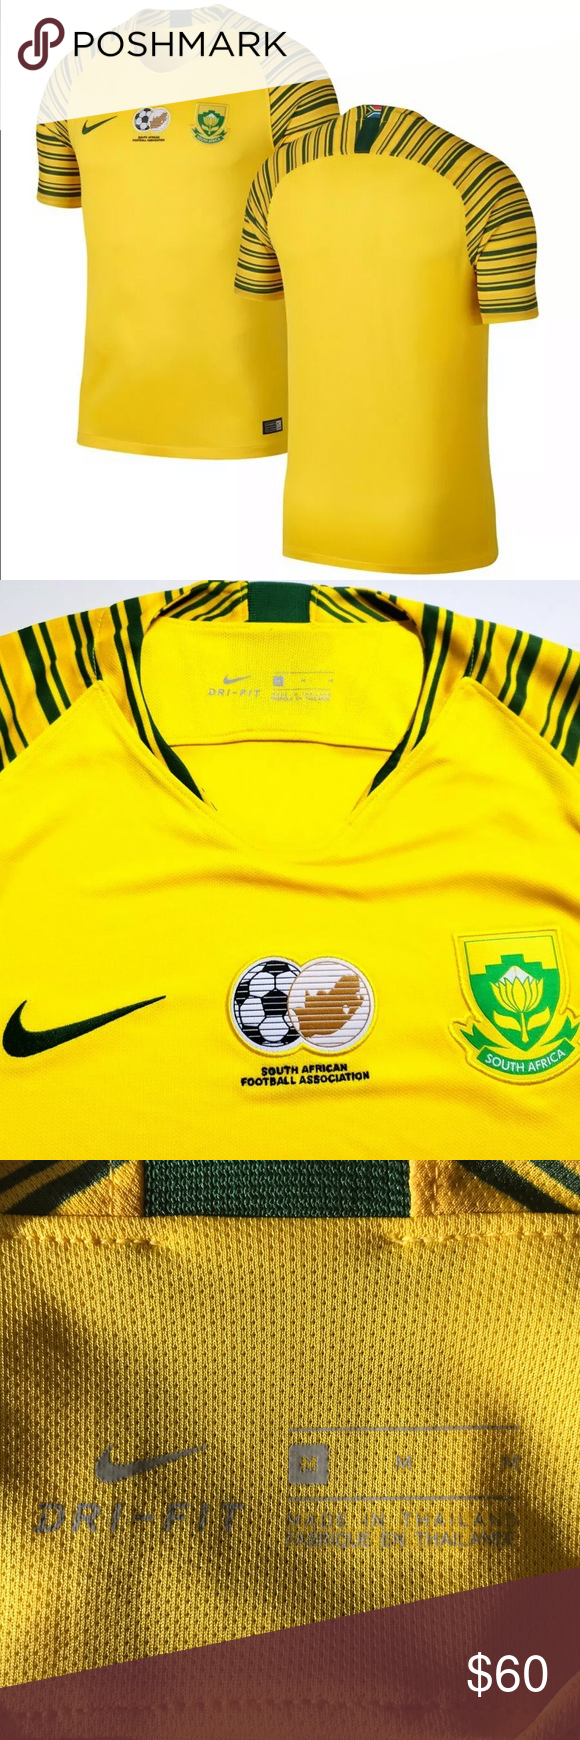 Nike South Africa 2018 Home Jersey Medium Soccer New With Tags Yellow With Green Stripes Medium 2018 Ap20 316 Nike S Clothes Design Fashion Design Nike Shirts